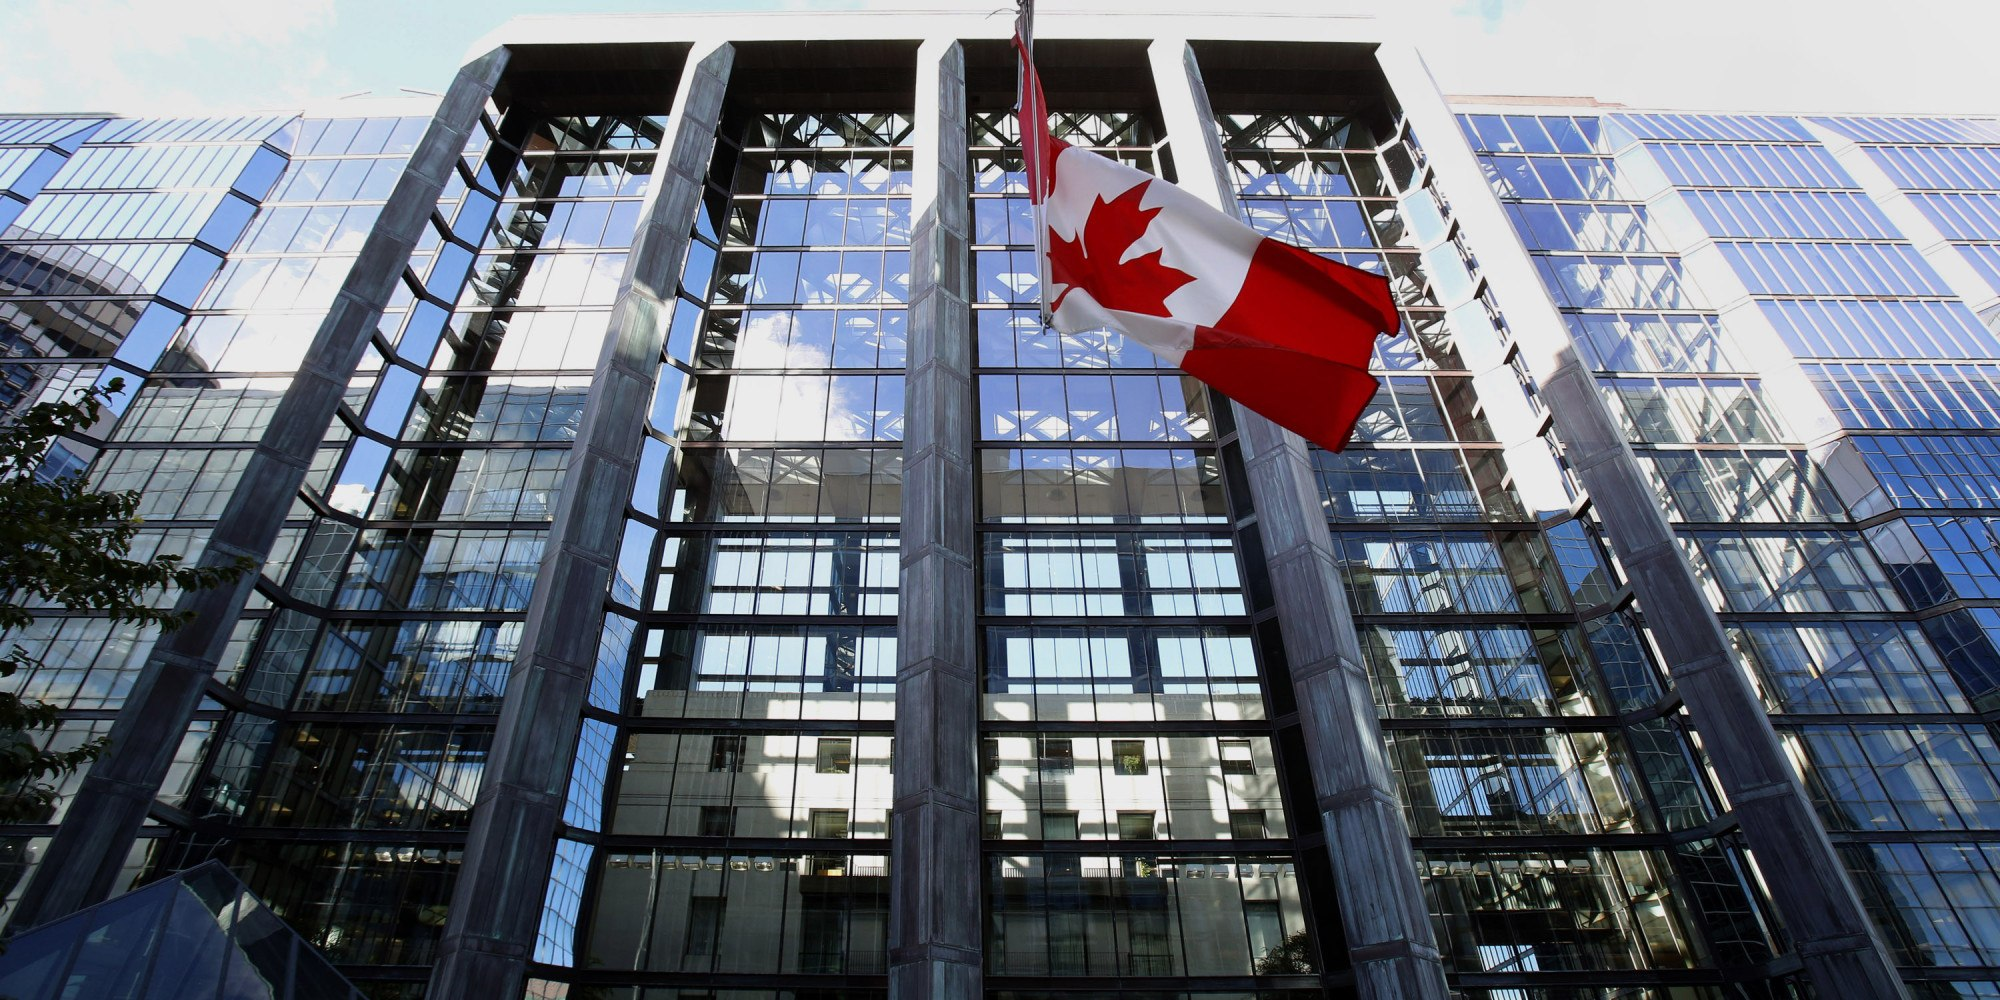 Real Estate investment Canada